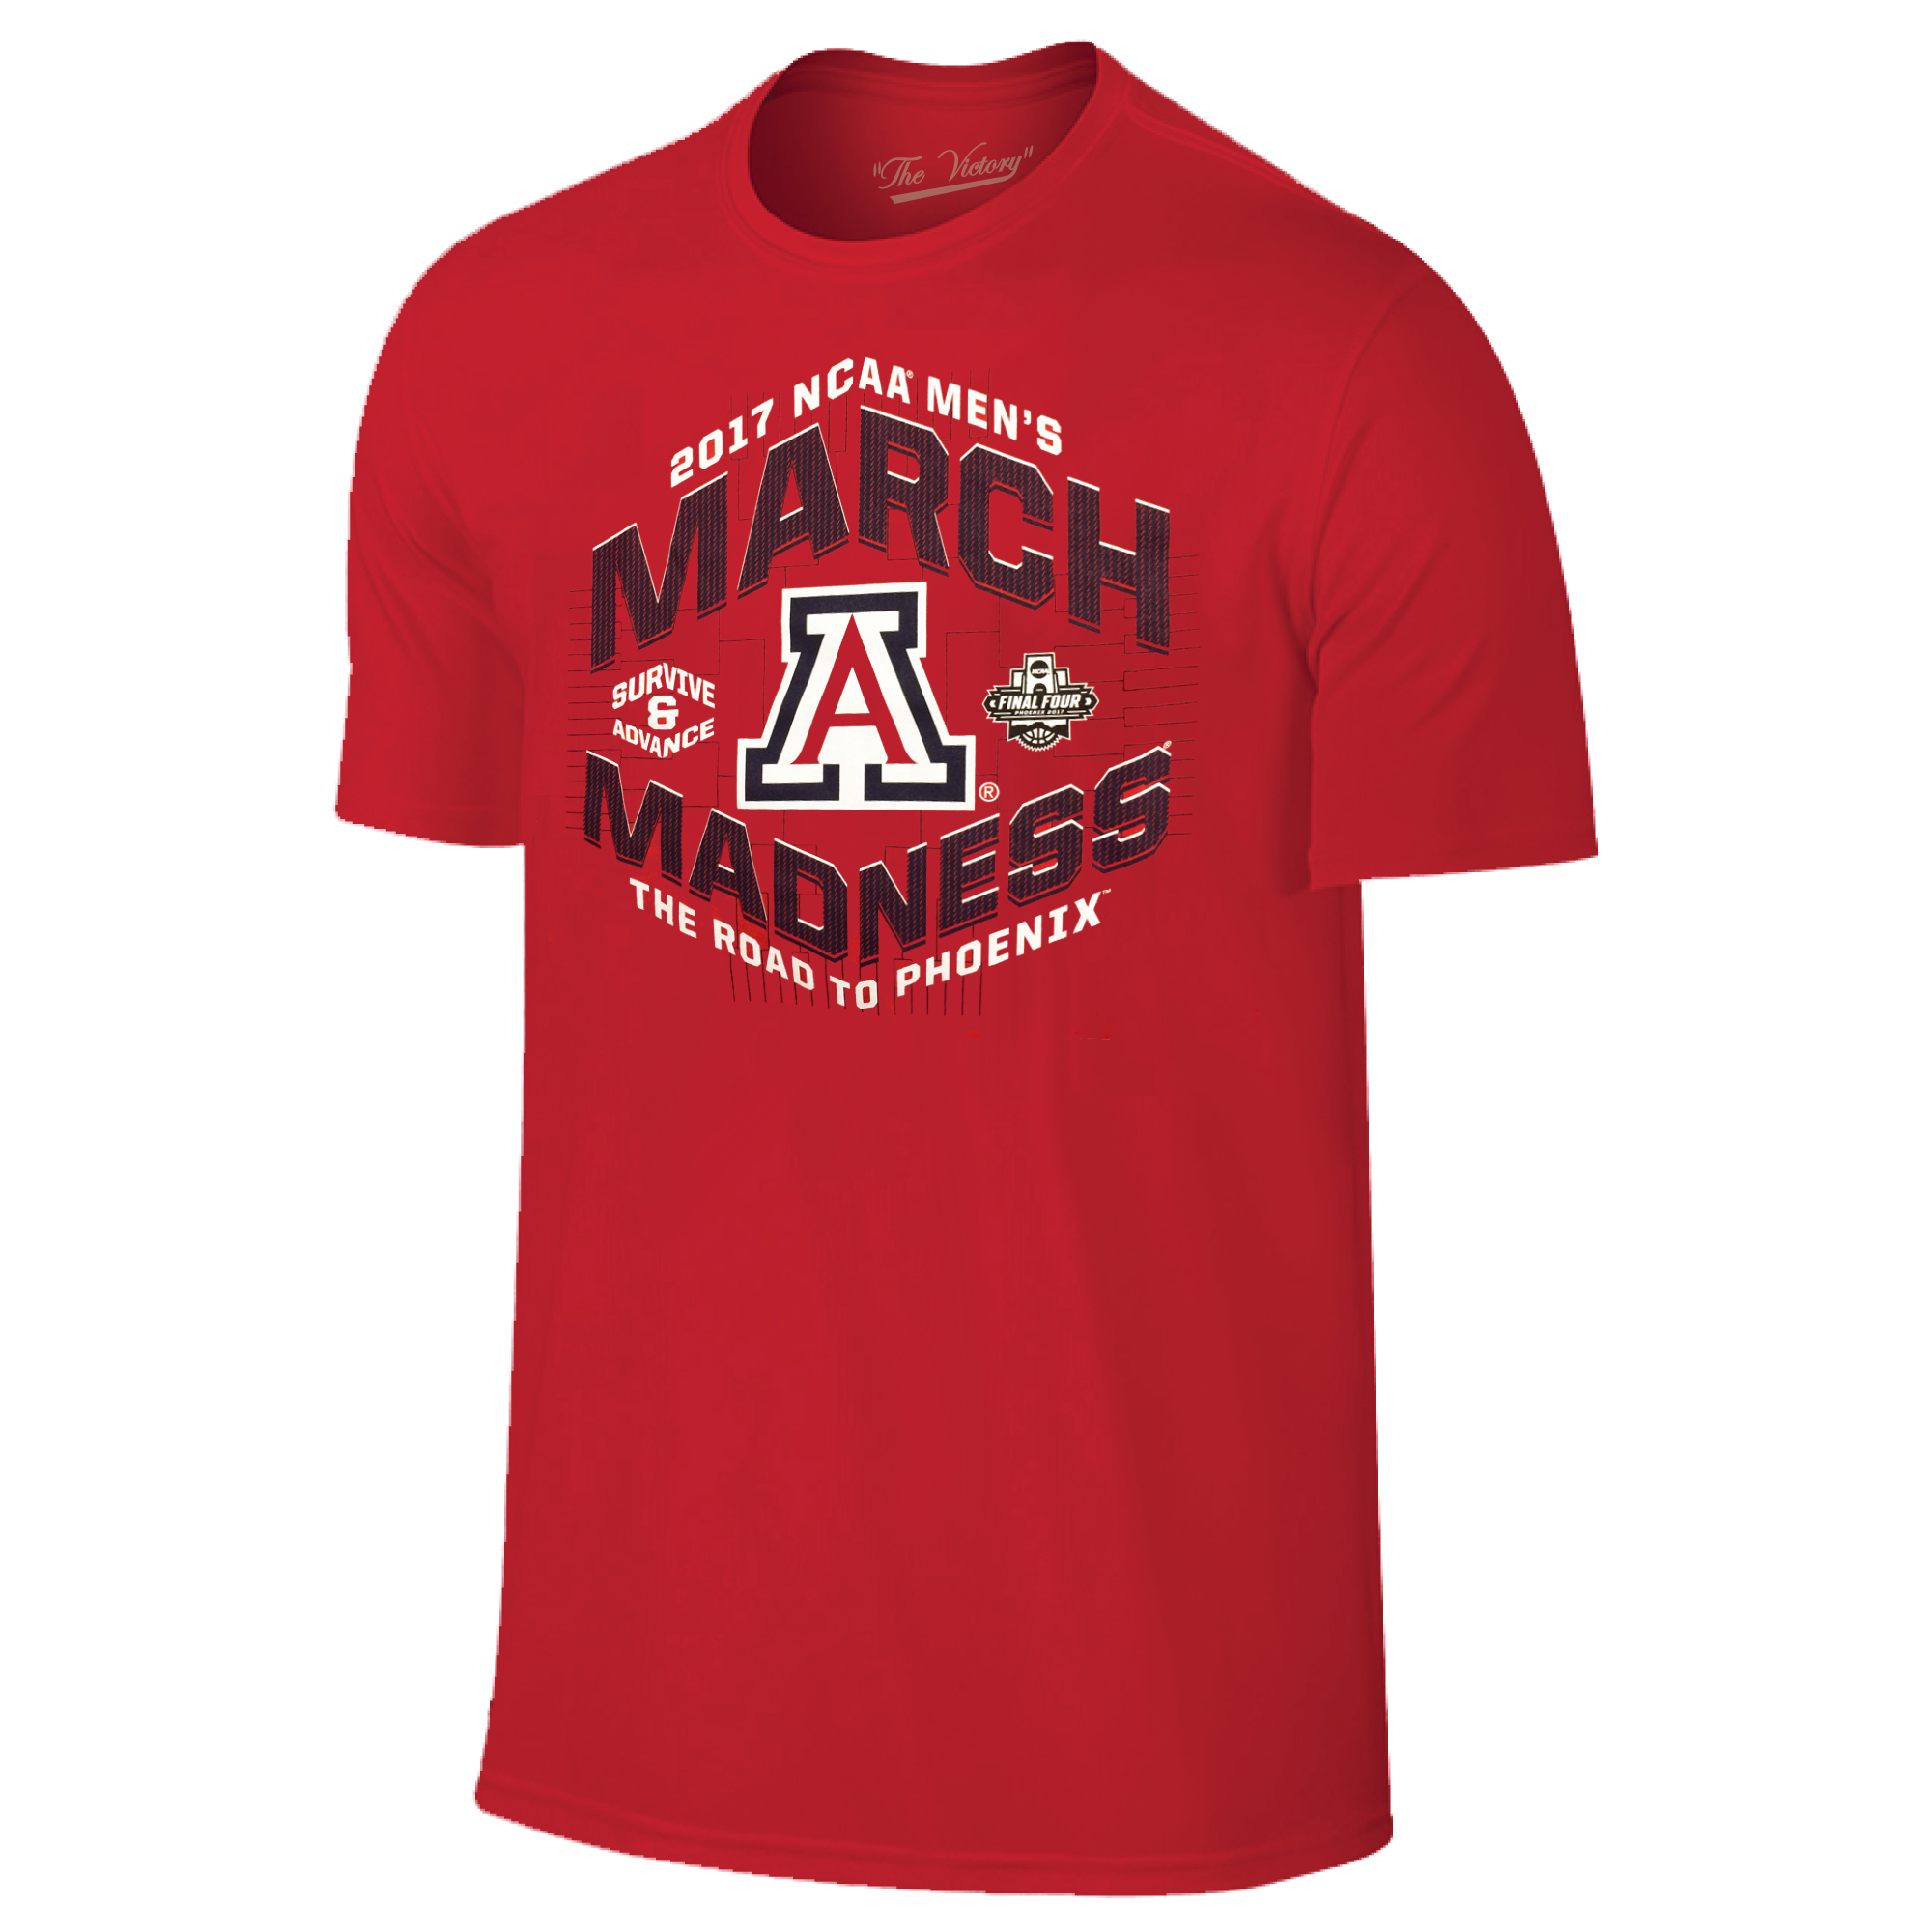 Image For 2017 Arizona March Madness Road to Phoenix Tee